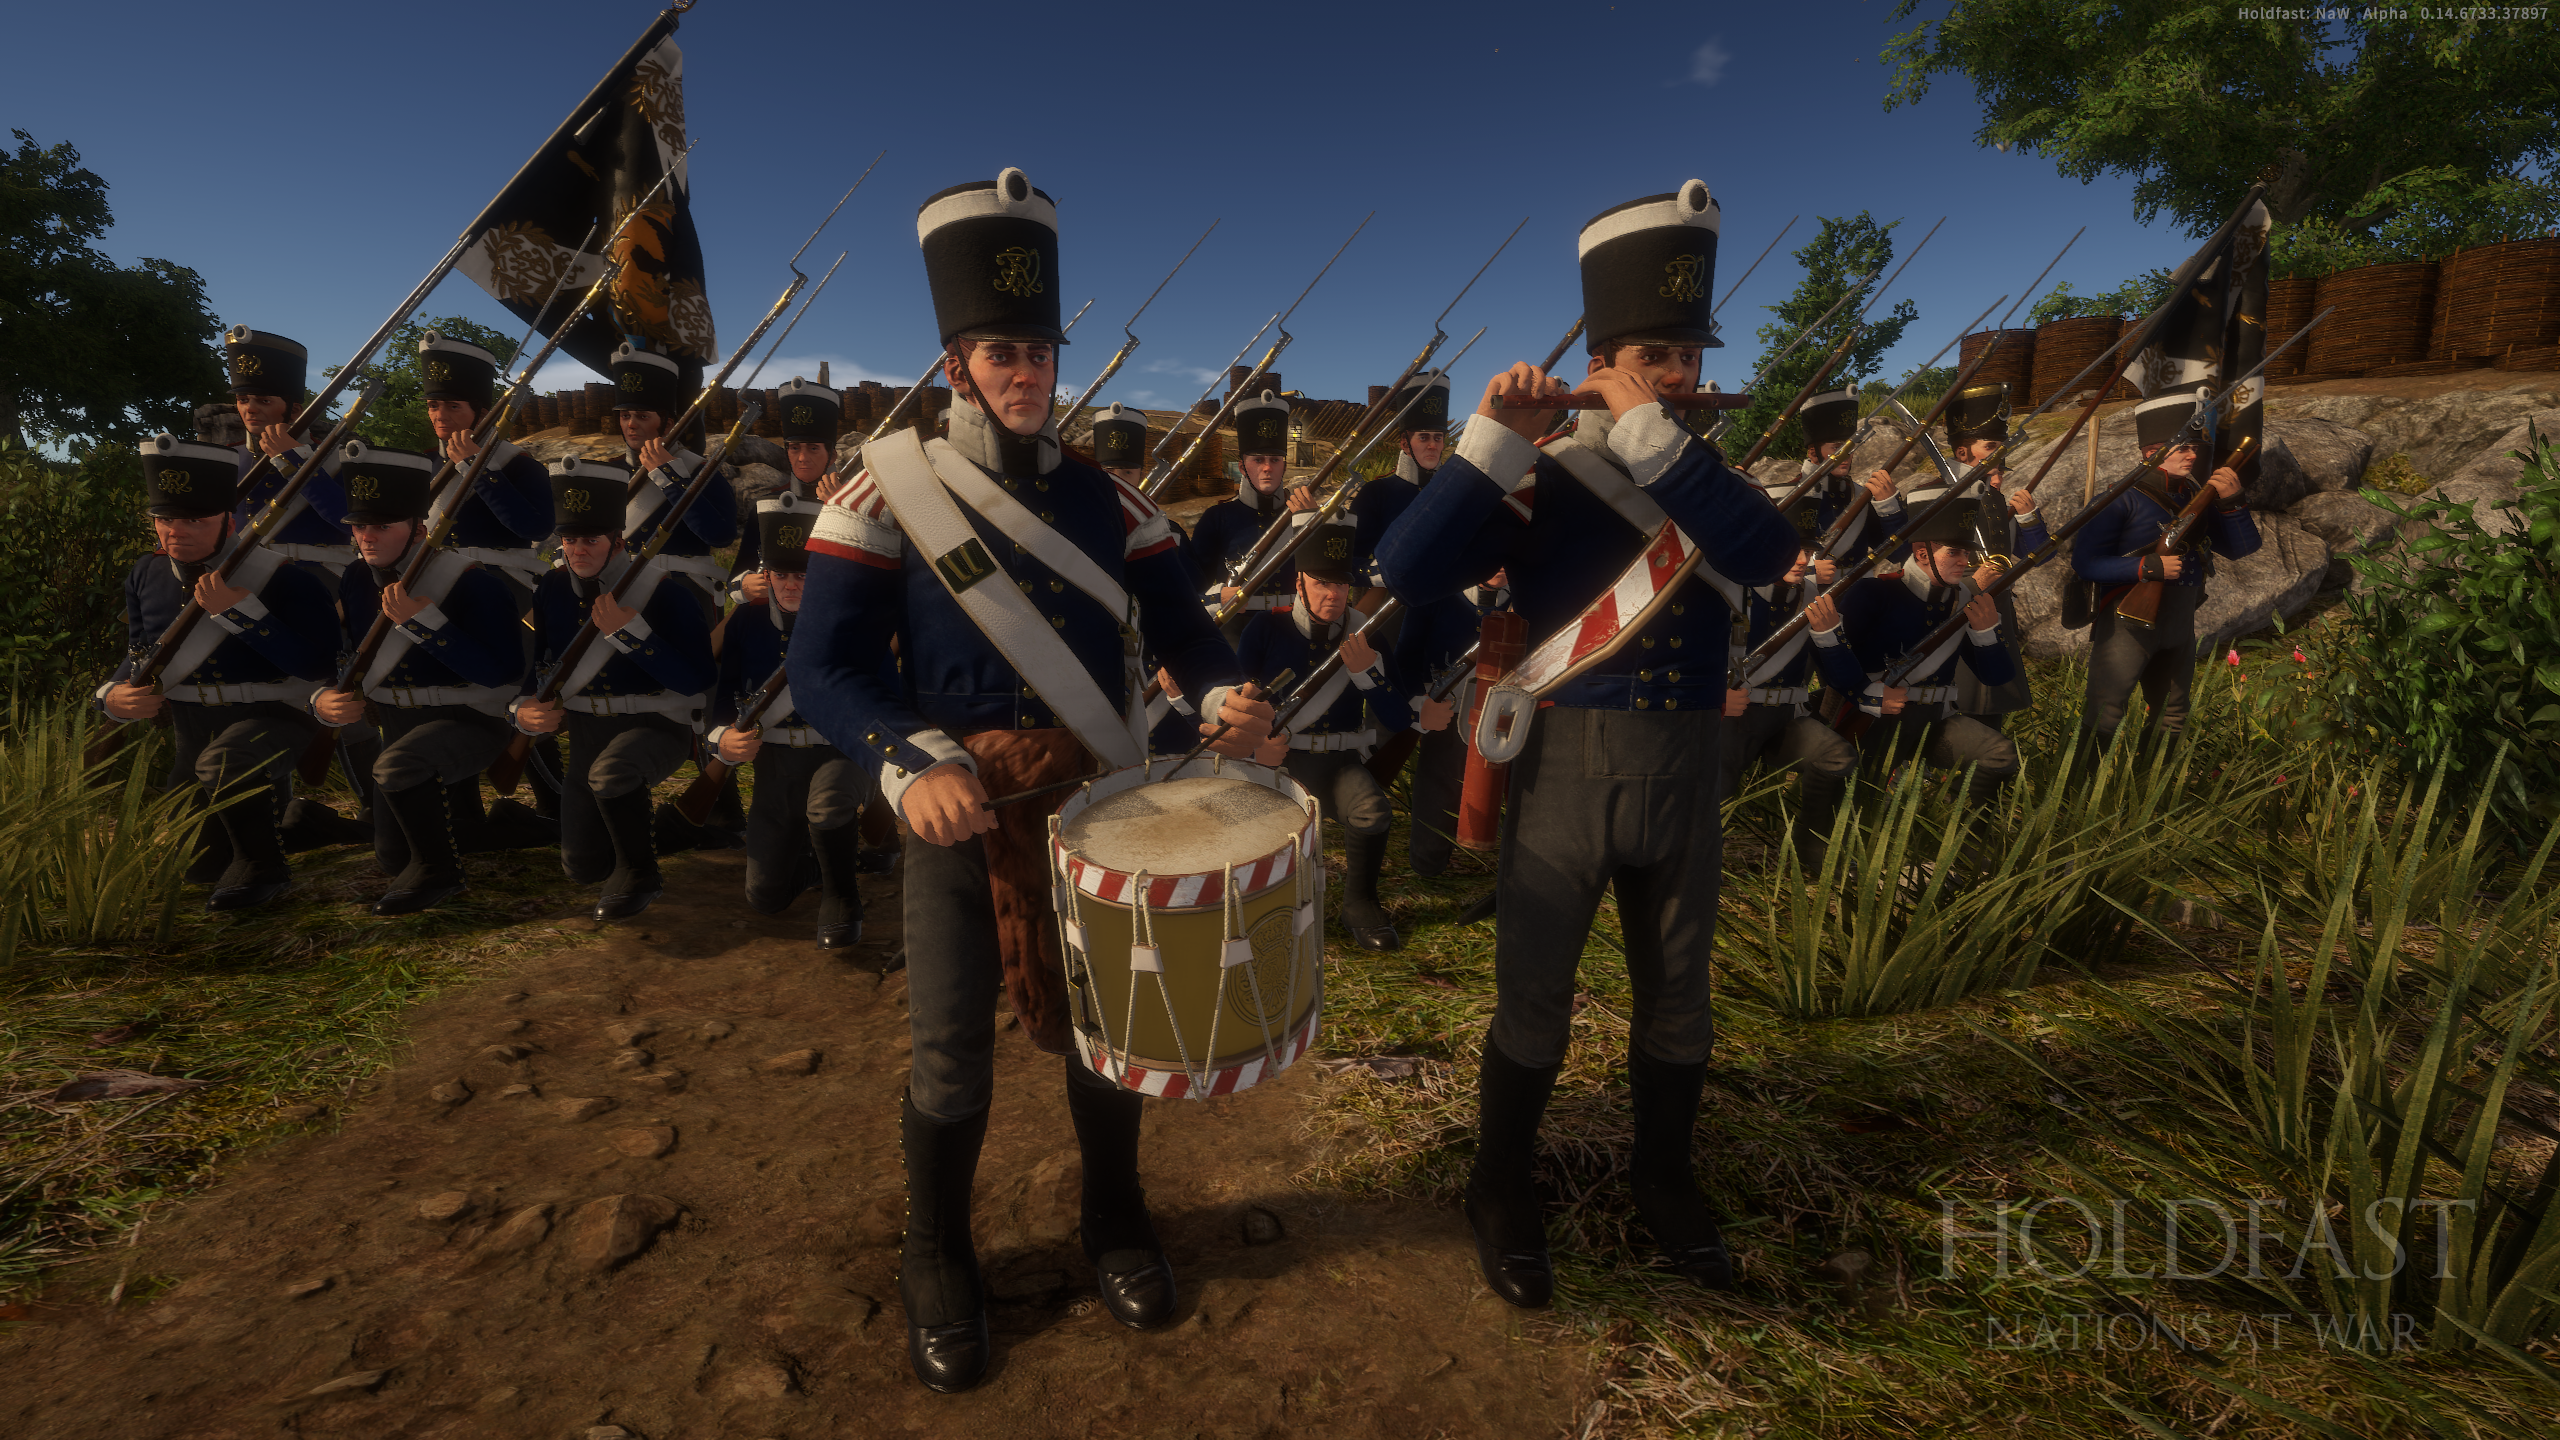 Holdfast_NaW_-_Prussian_Musicians_Colber